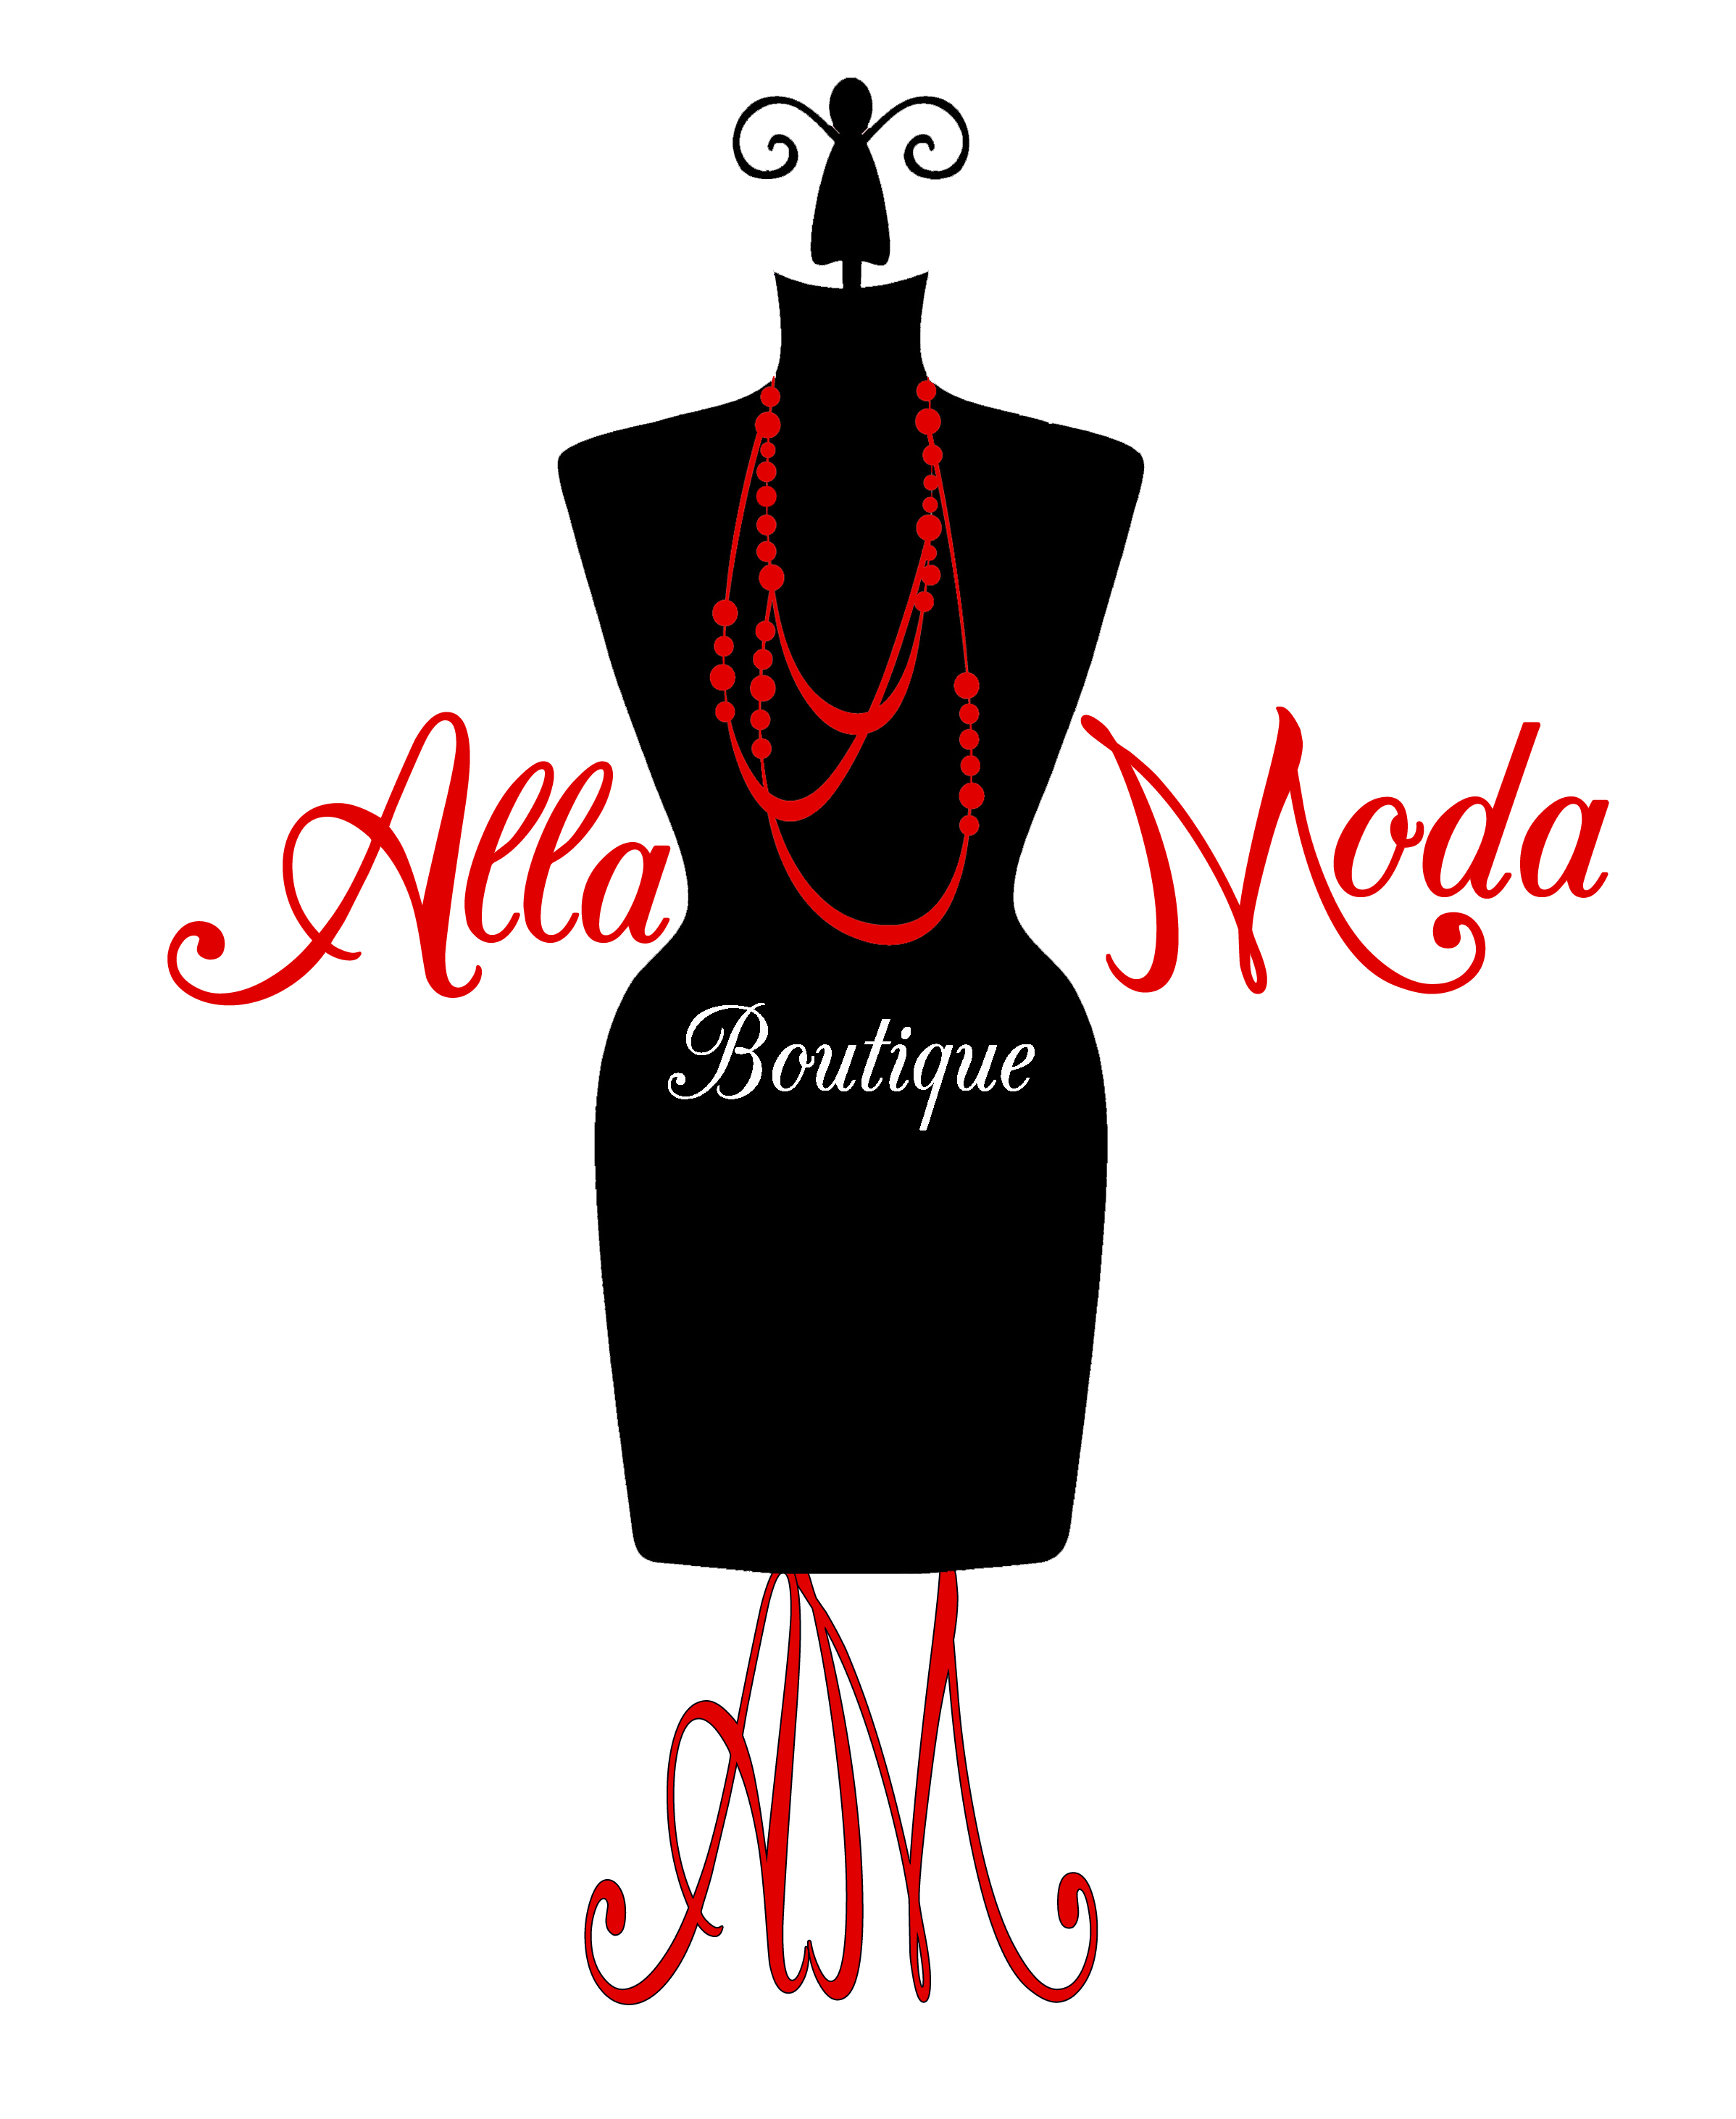 Alla Moda Boutique